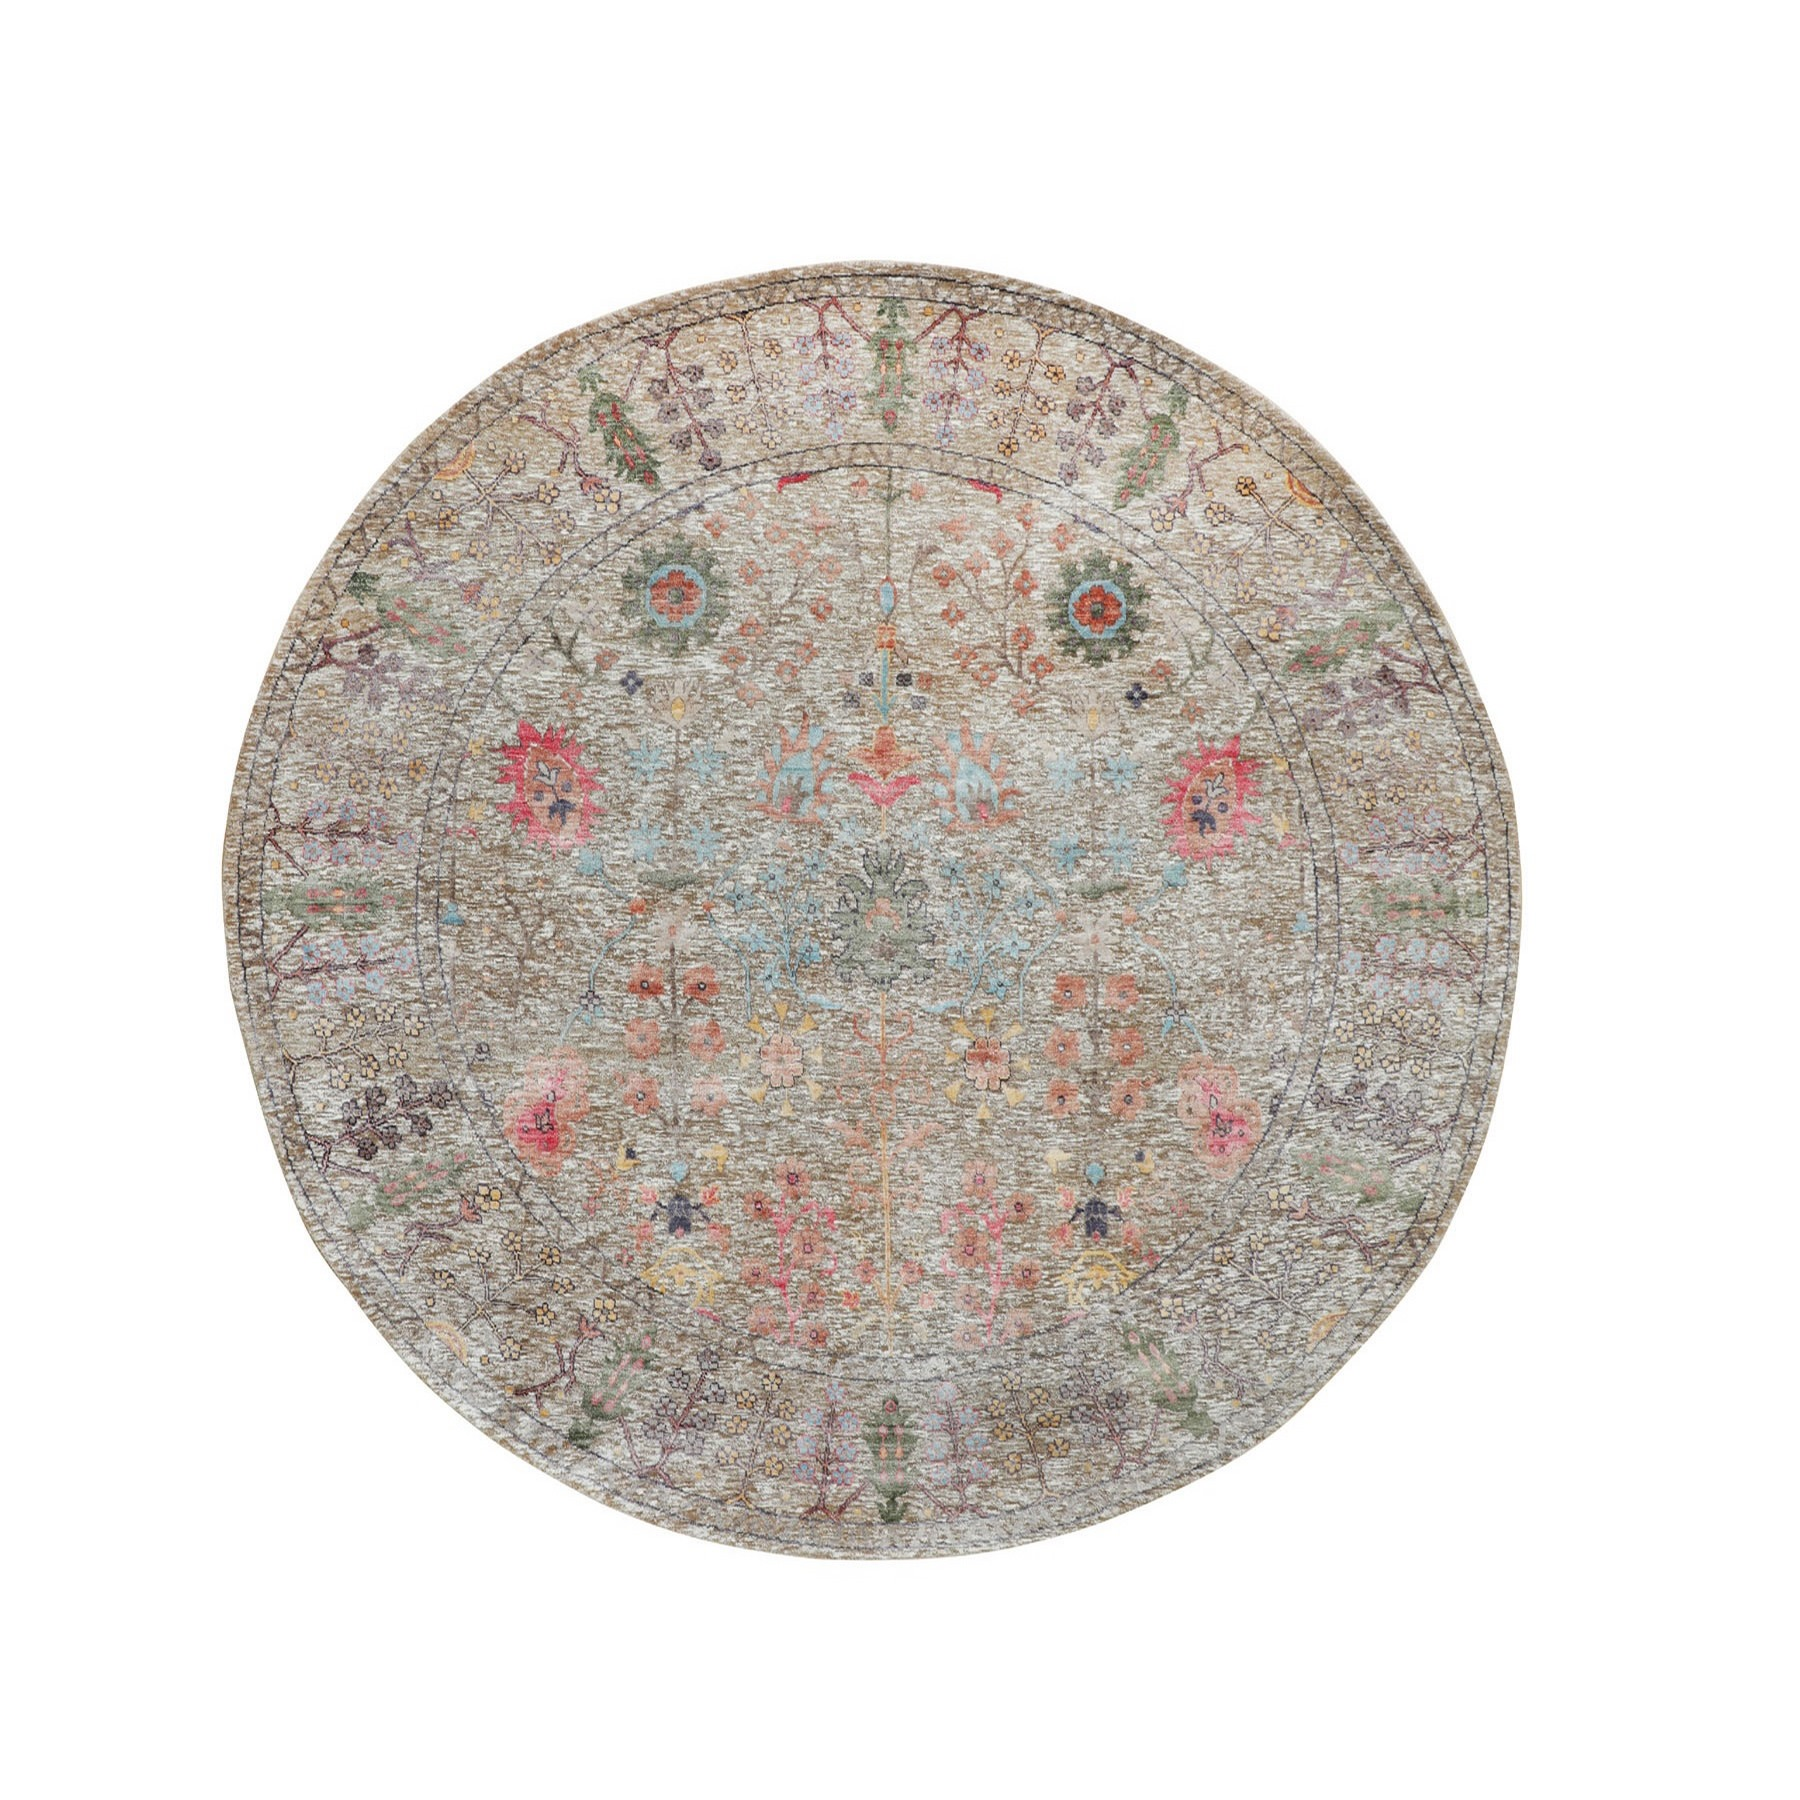 7'X7' Round Beige Silk With Textured Wool Vaze Design Hand Knotted Oriental Rug moae8ae9